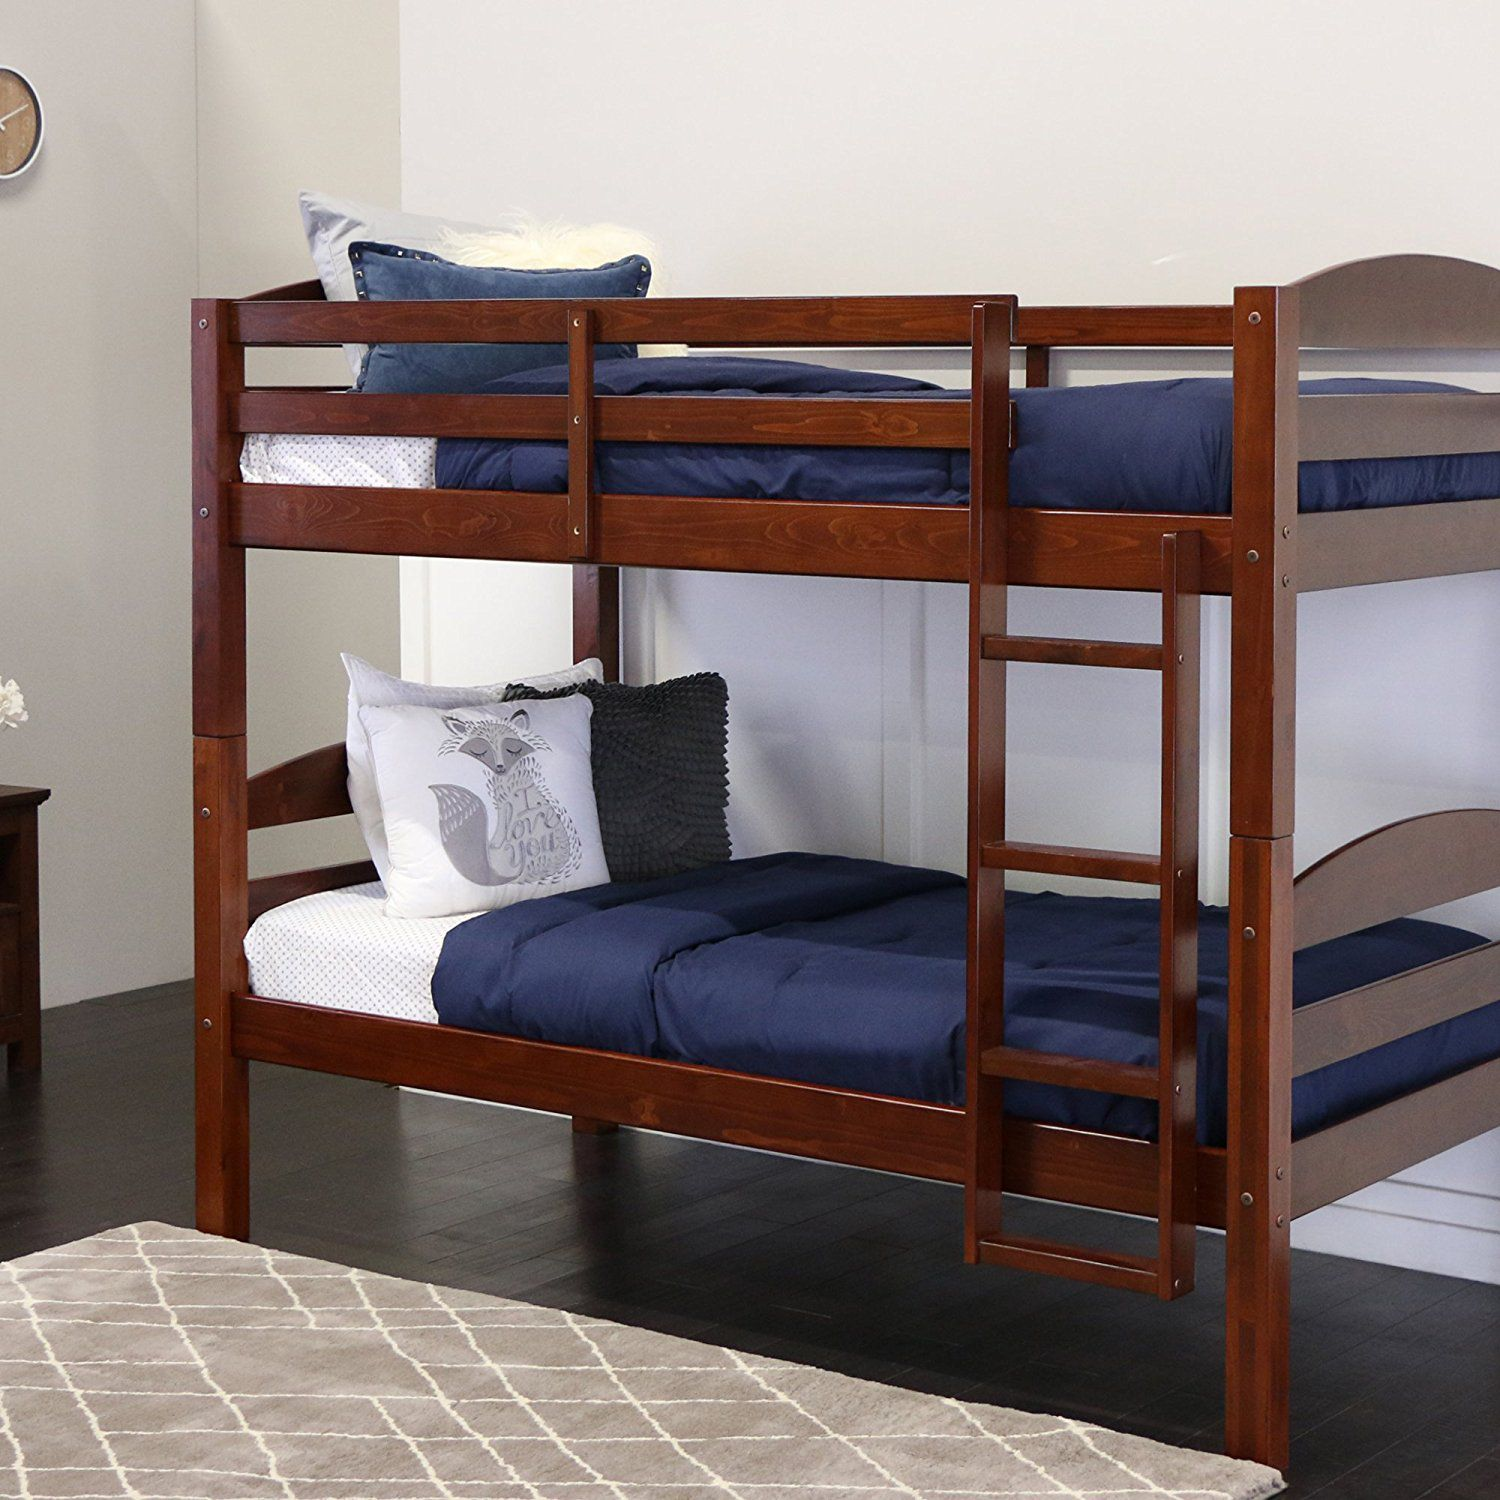 of cheap mattress bunk interior with included random design baka simple bedroom beds bed for